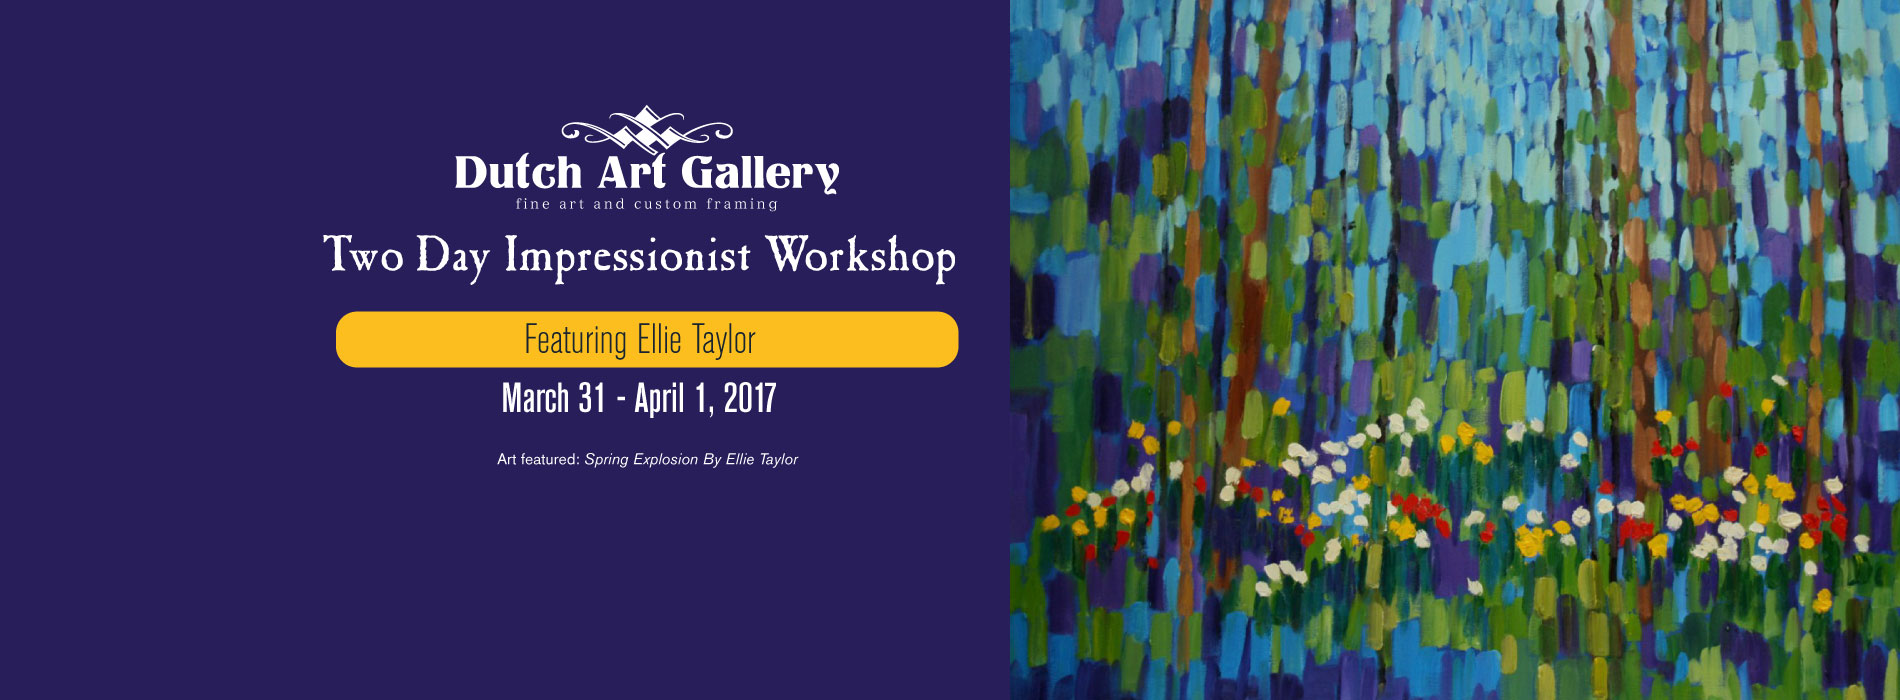 Two Day Impressionist Workshop | Featuring Ellie Taylor